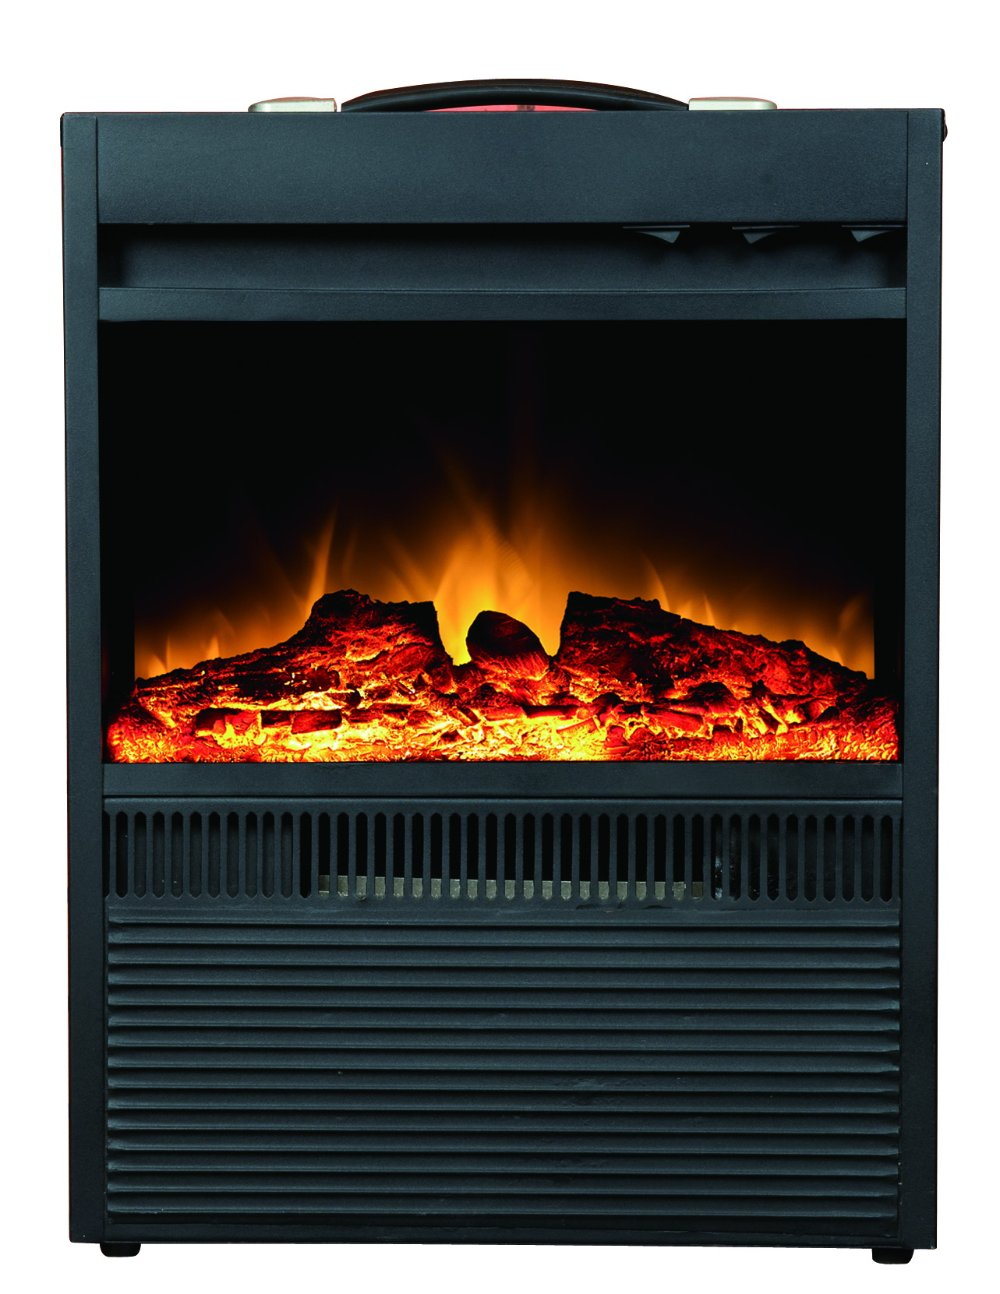 Portable Insert Indoor Decrotive Electric Fireplace With Mantel In Electric Fireplaces From